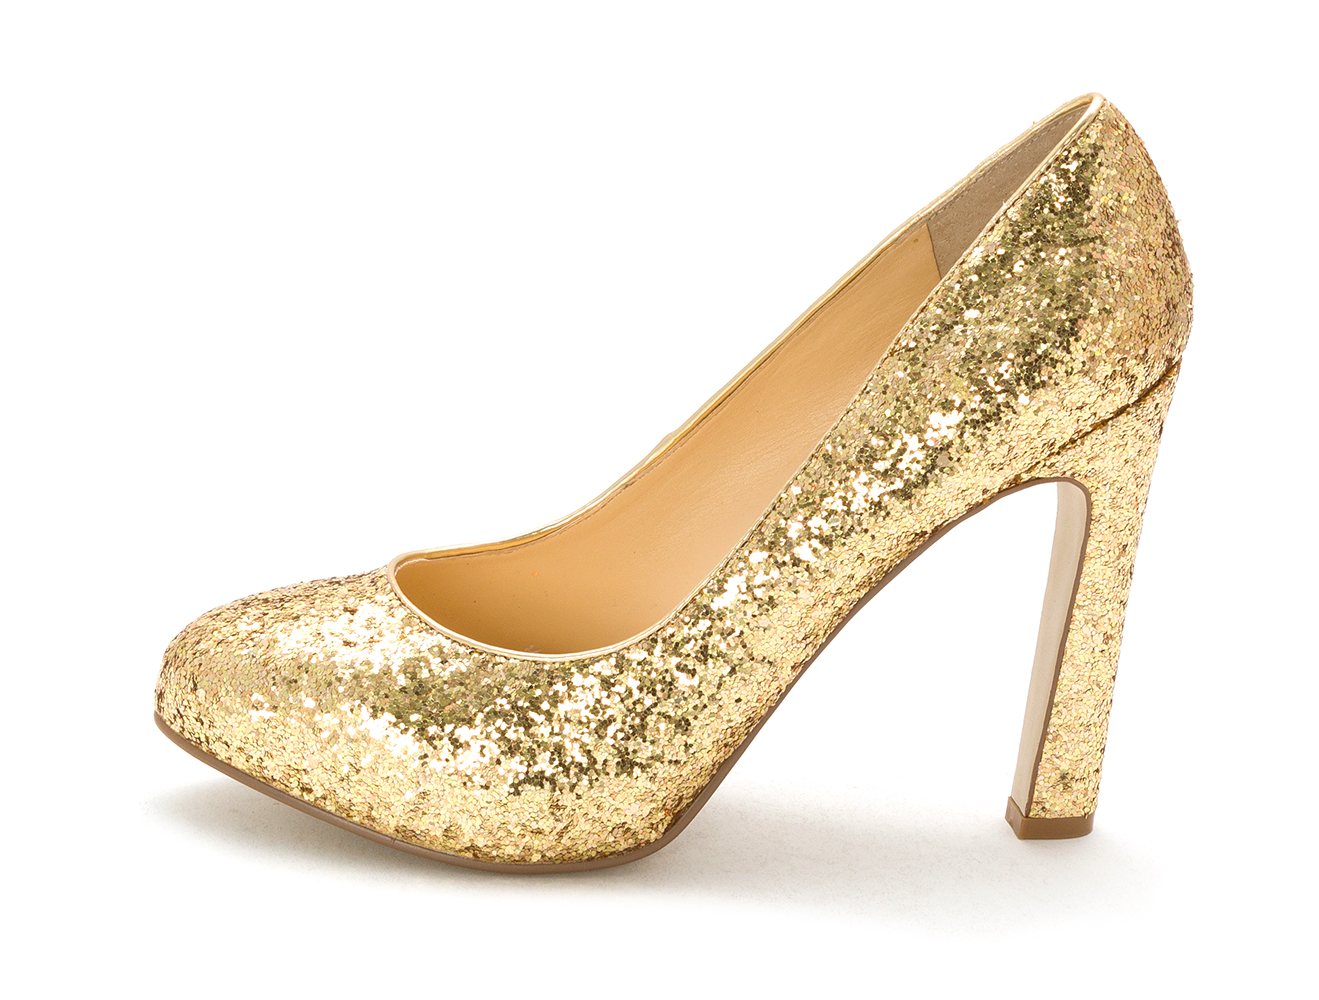 GUESS Womens Shaney2 Closed Toe Classic Pumps Gold Glitter Size 8.5